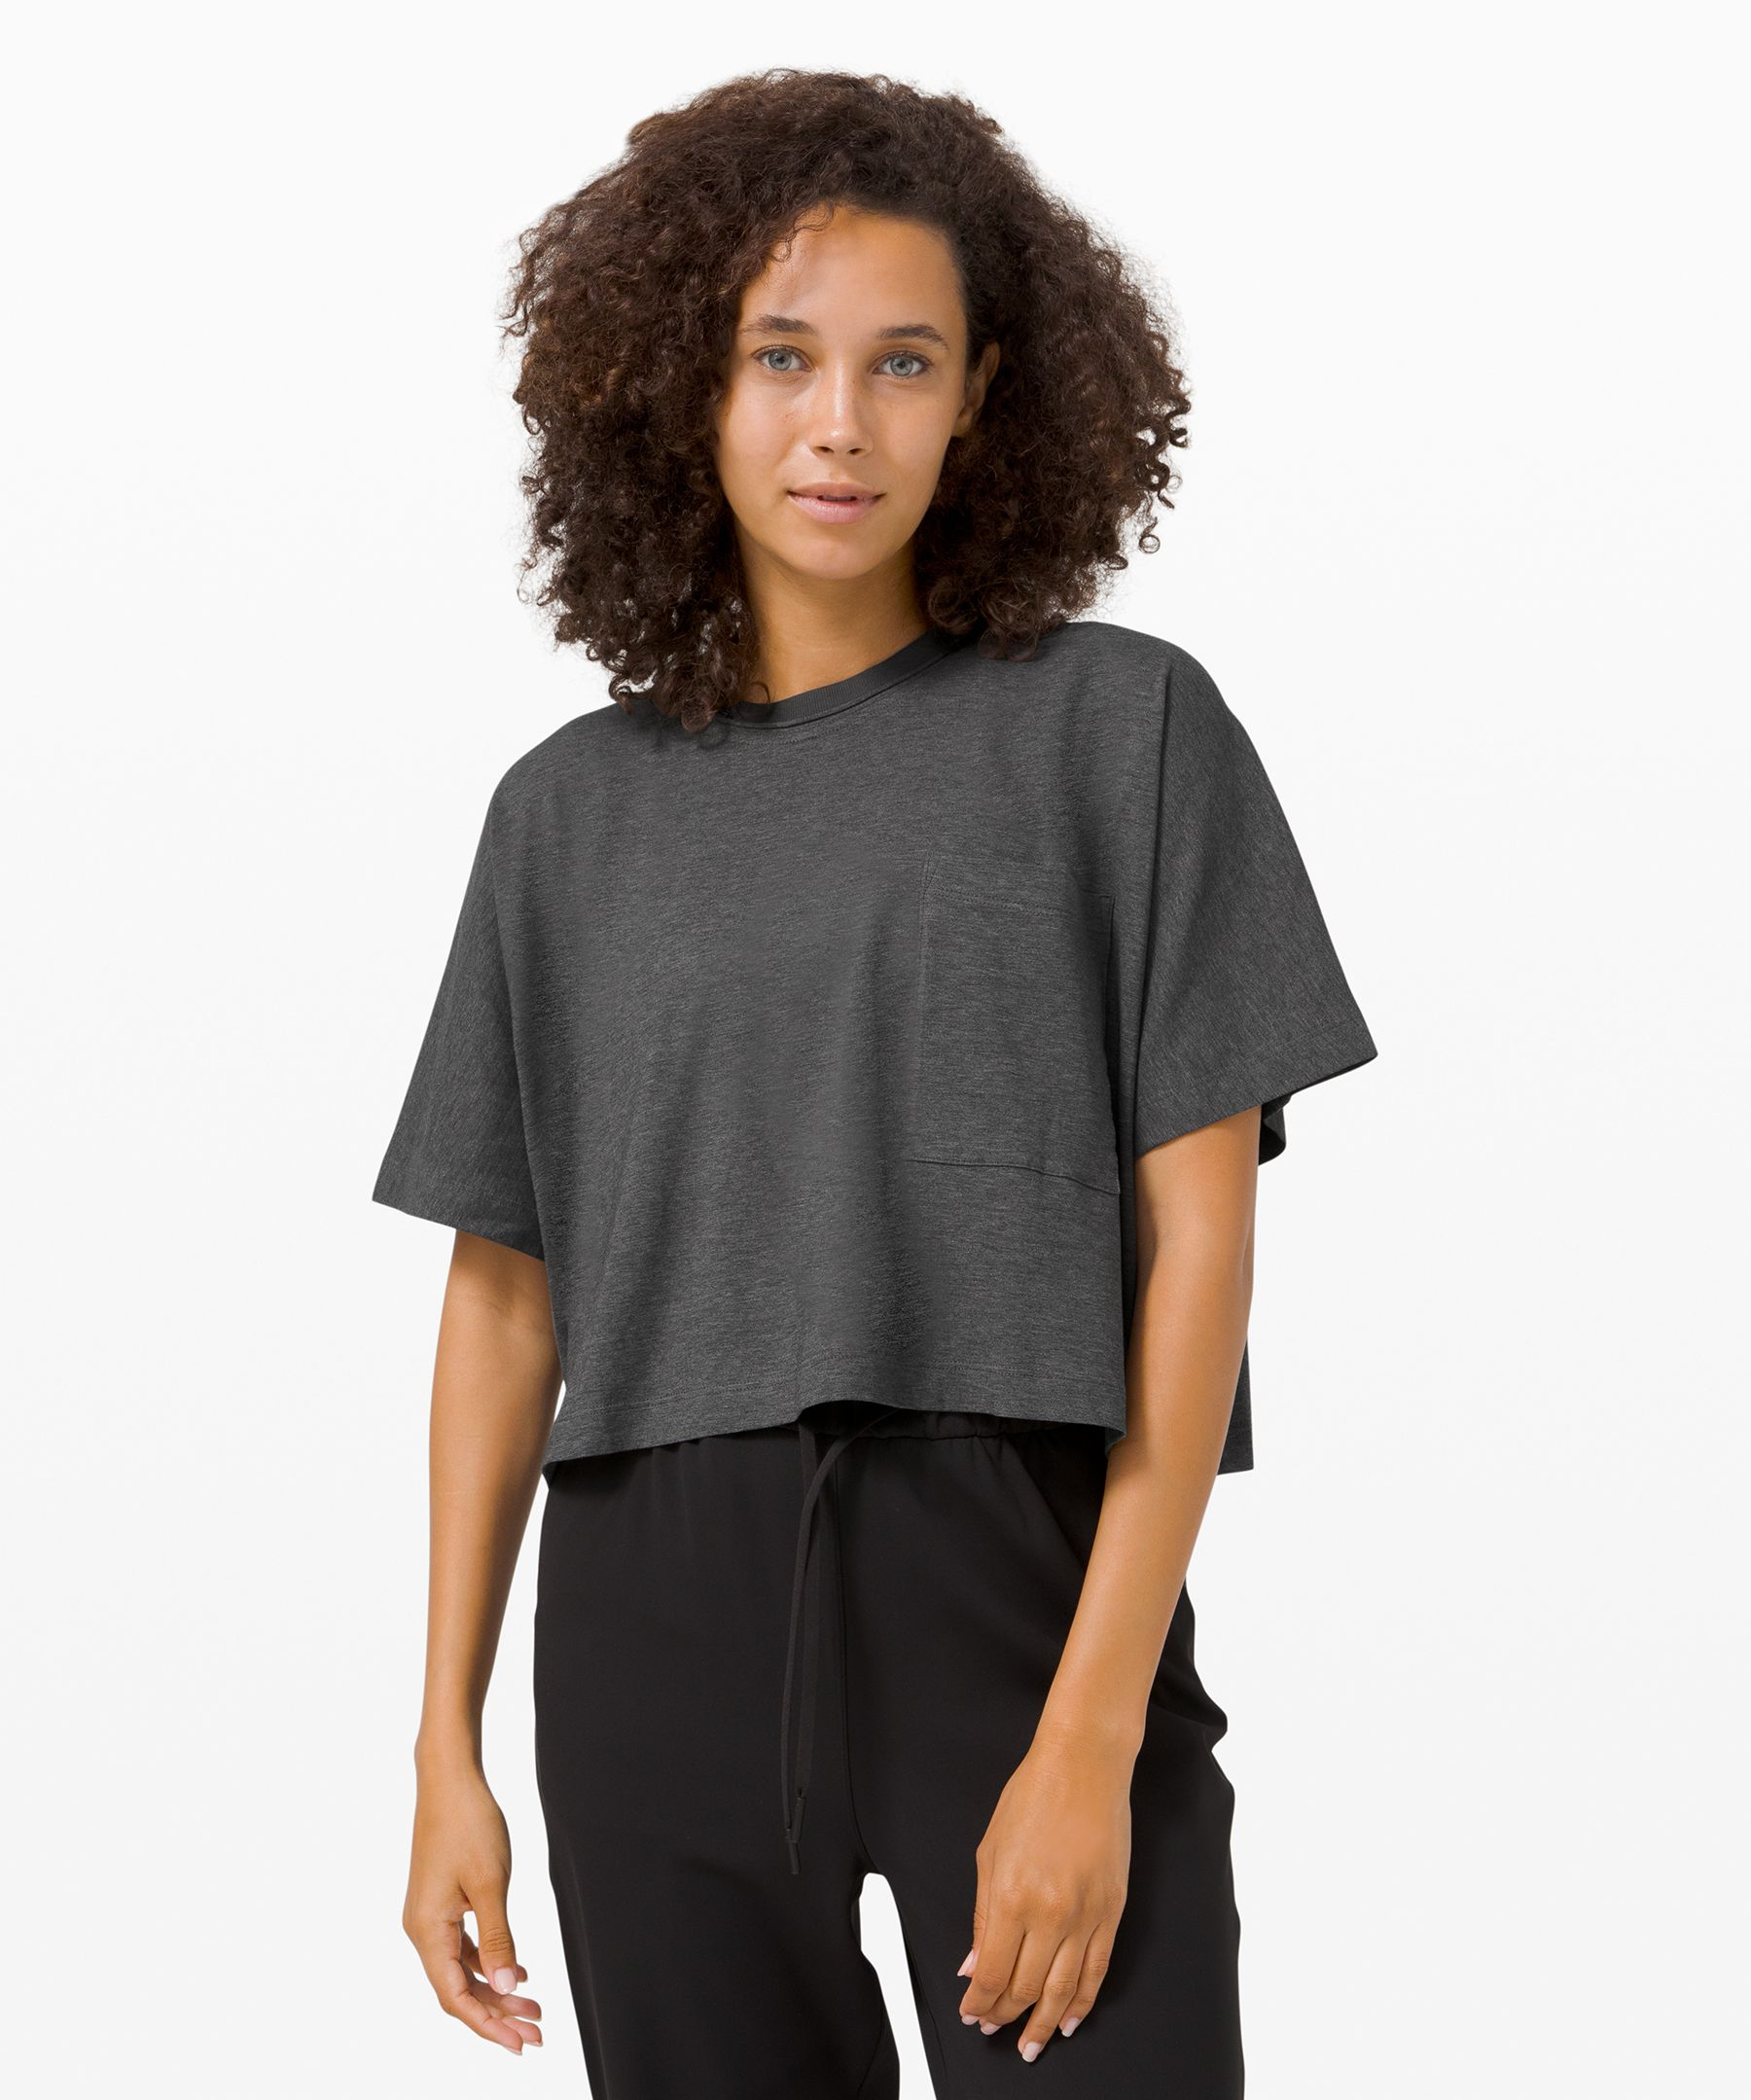 The beauty of a good basic. We made this one special with soft, cotton fabric, a boxy shape, and a big pocket.